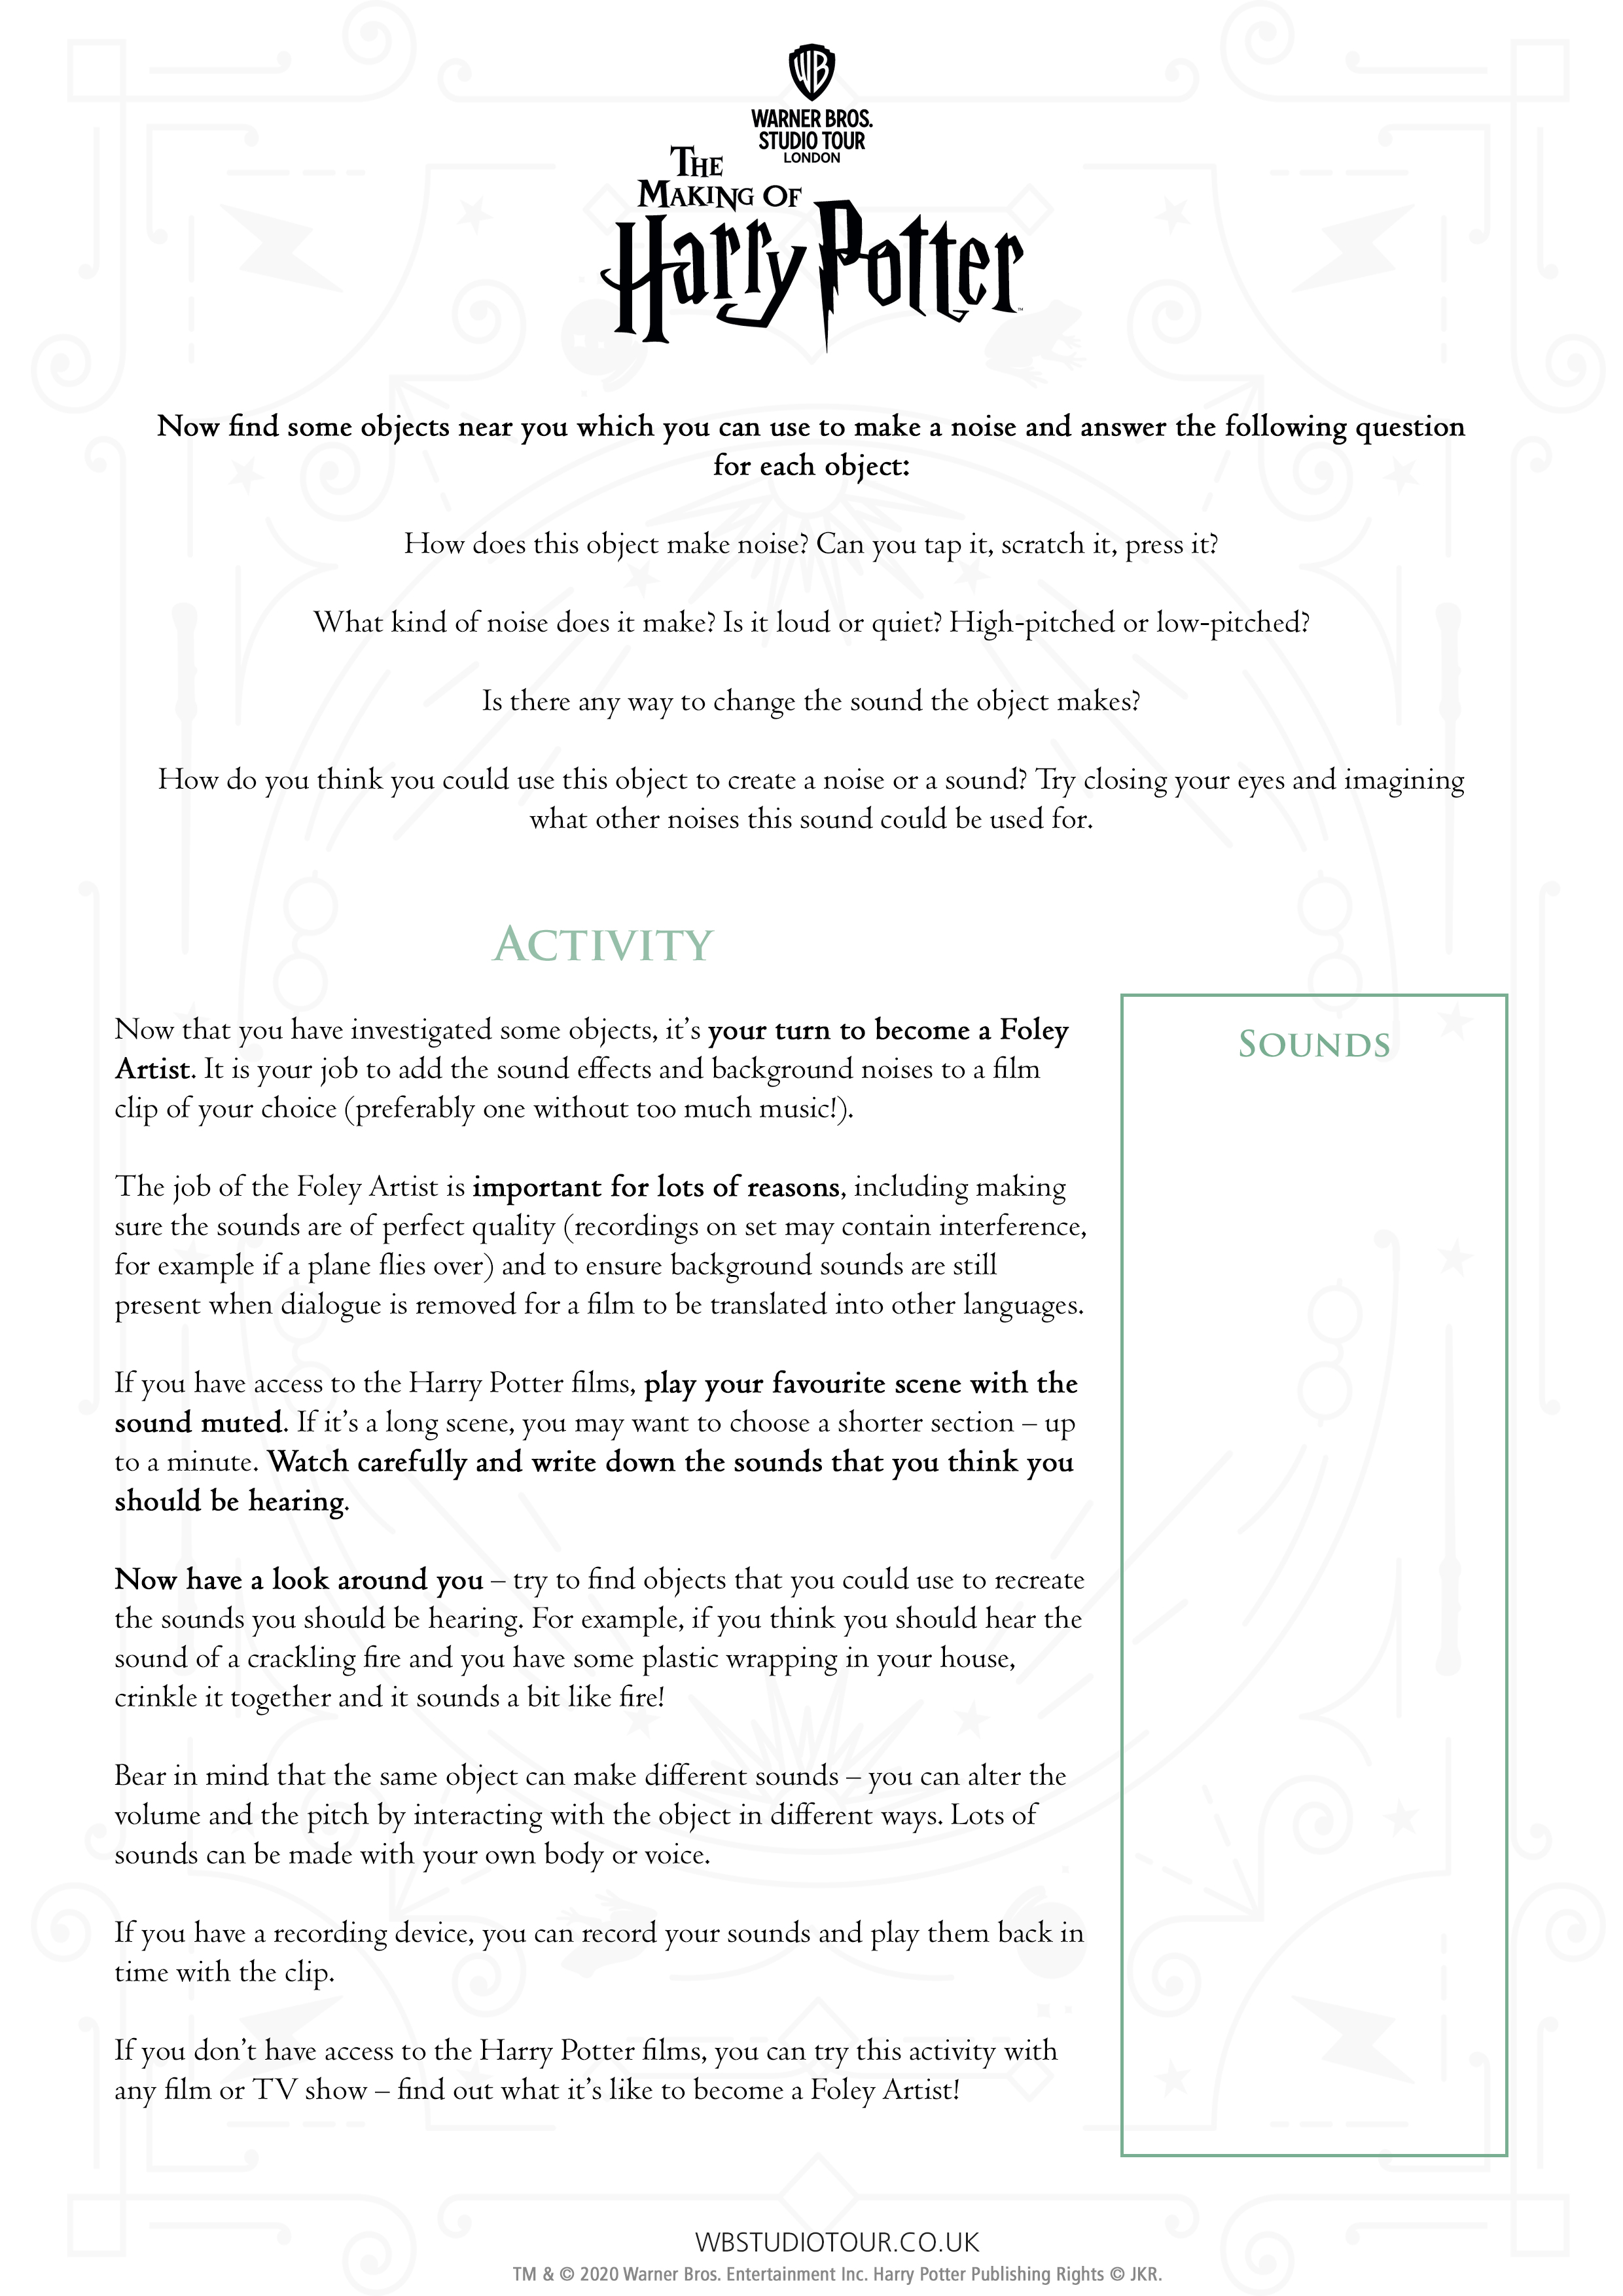 Foley activity sheet page 2